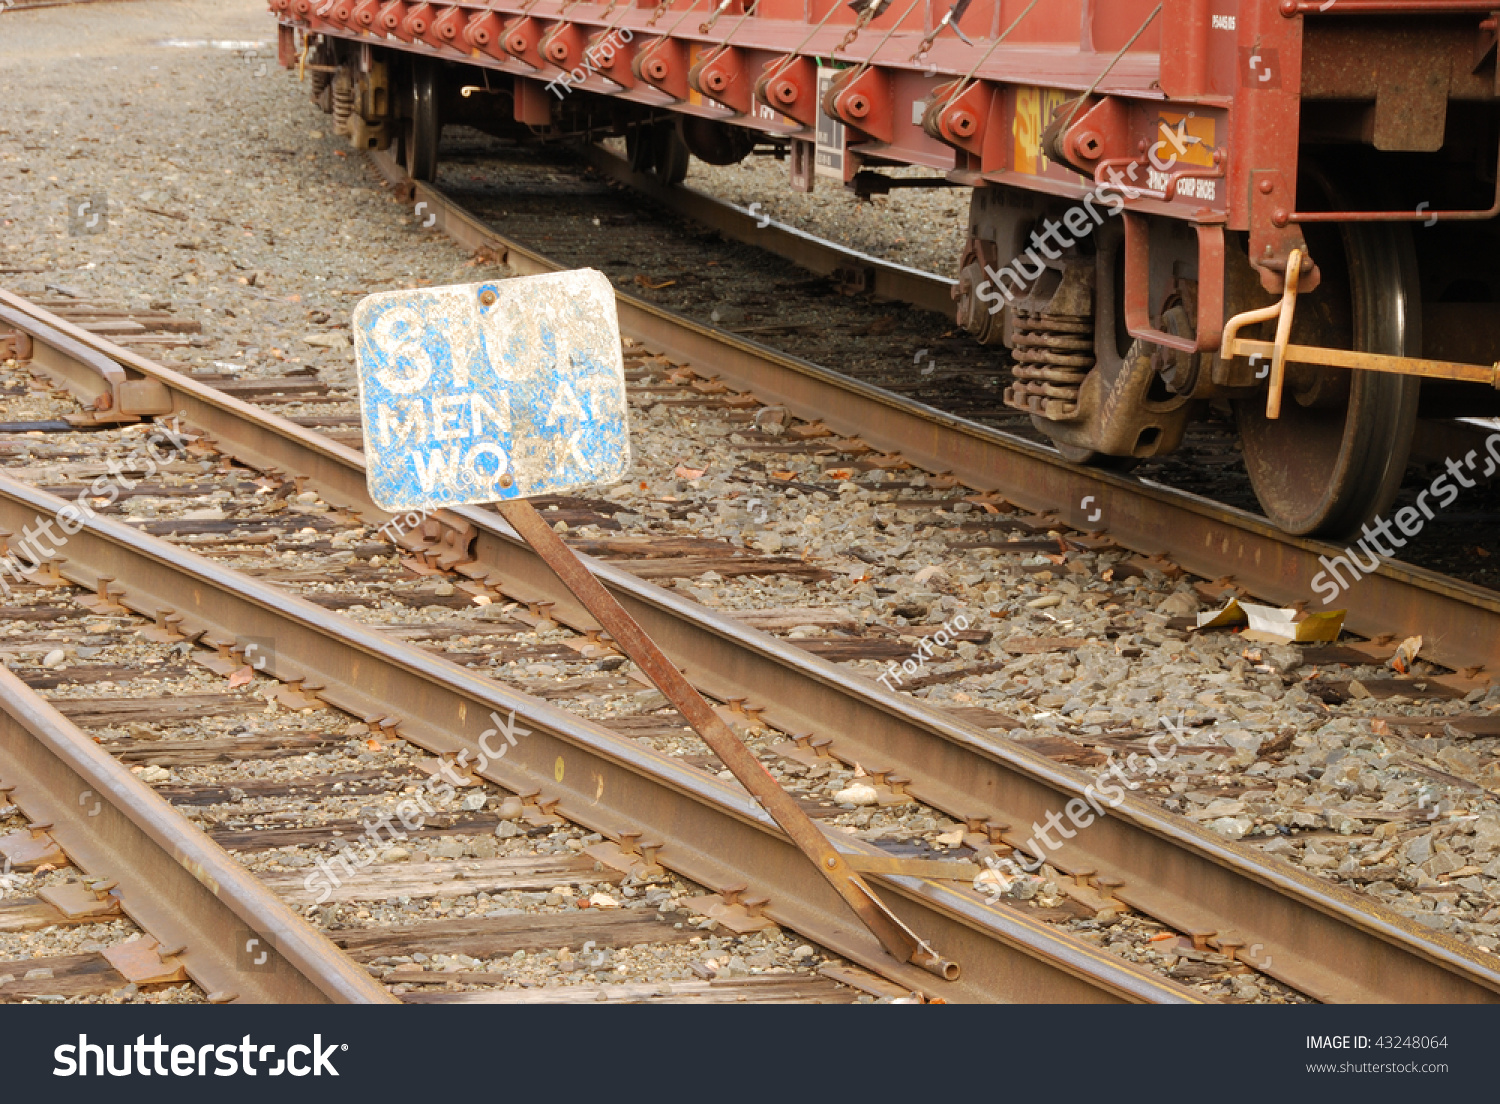 railroad men Find great deals on ebay for railroad men shop with confidence.